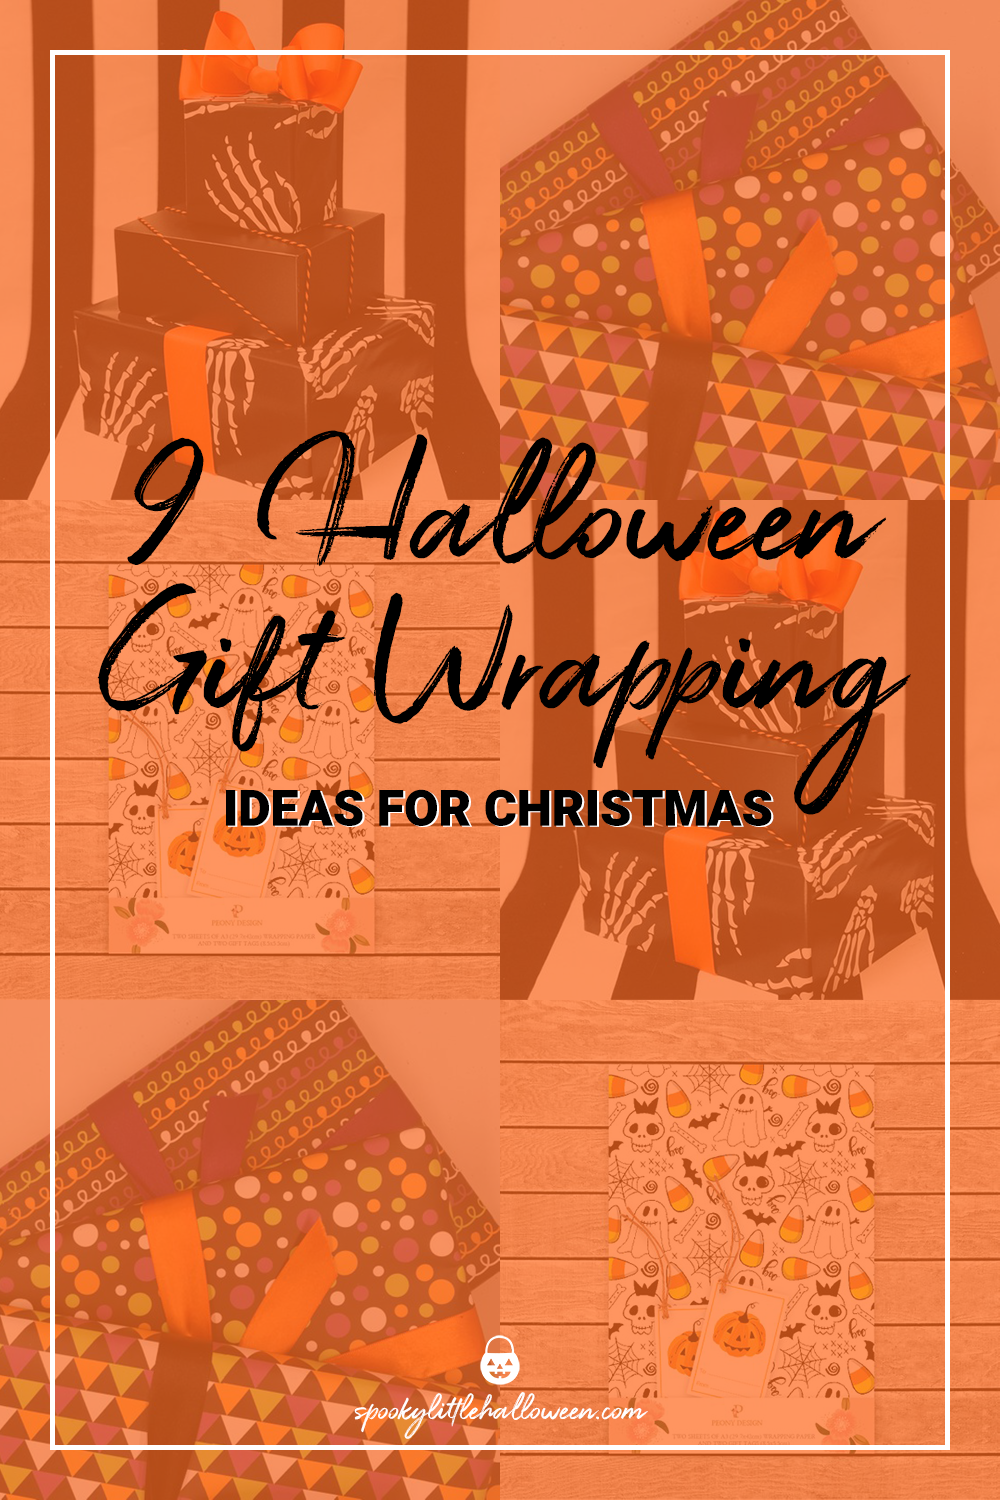 9 Halloween Gift Wrapping Ideas for Christmas - Spooky Little Halloween